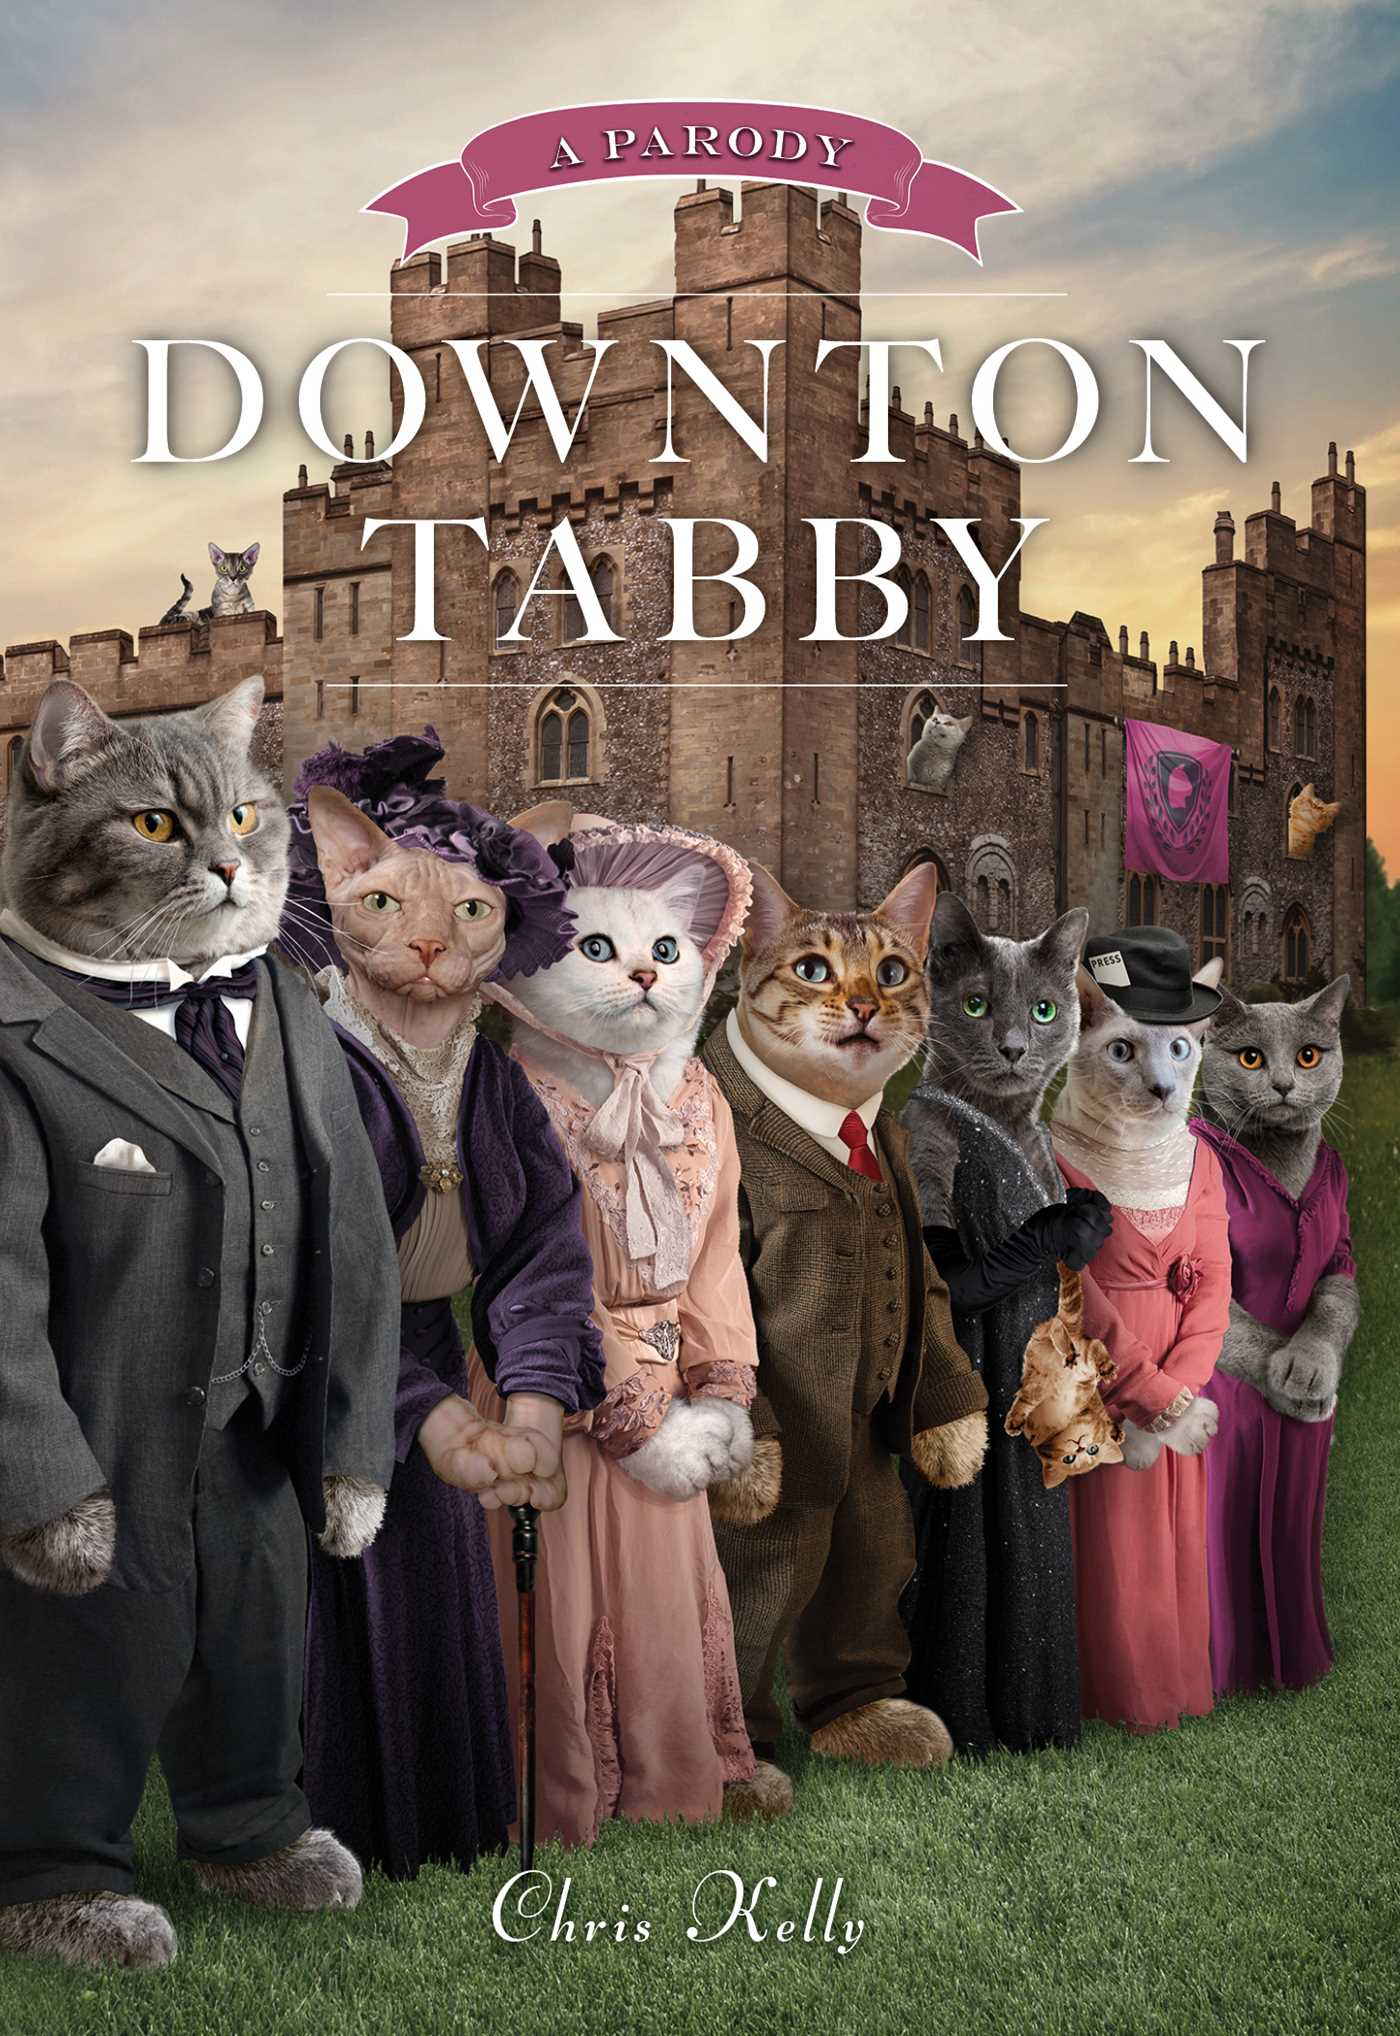 Downton tabby 9781476765945 hr